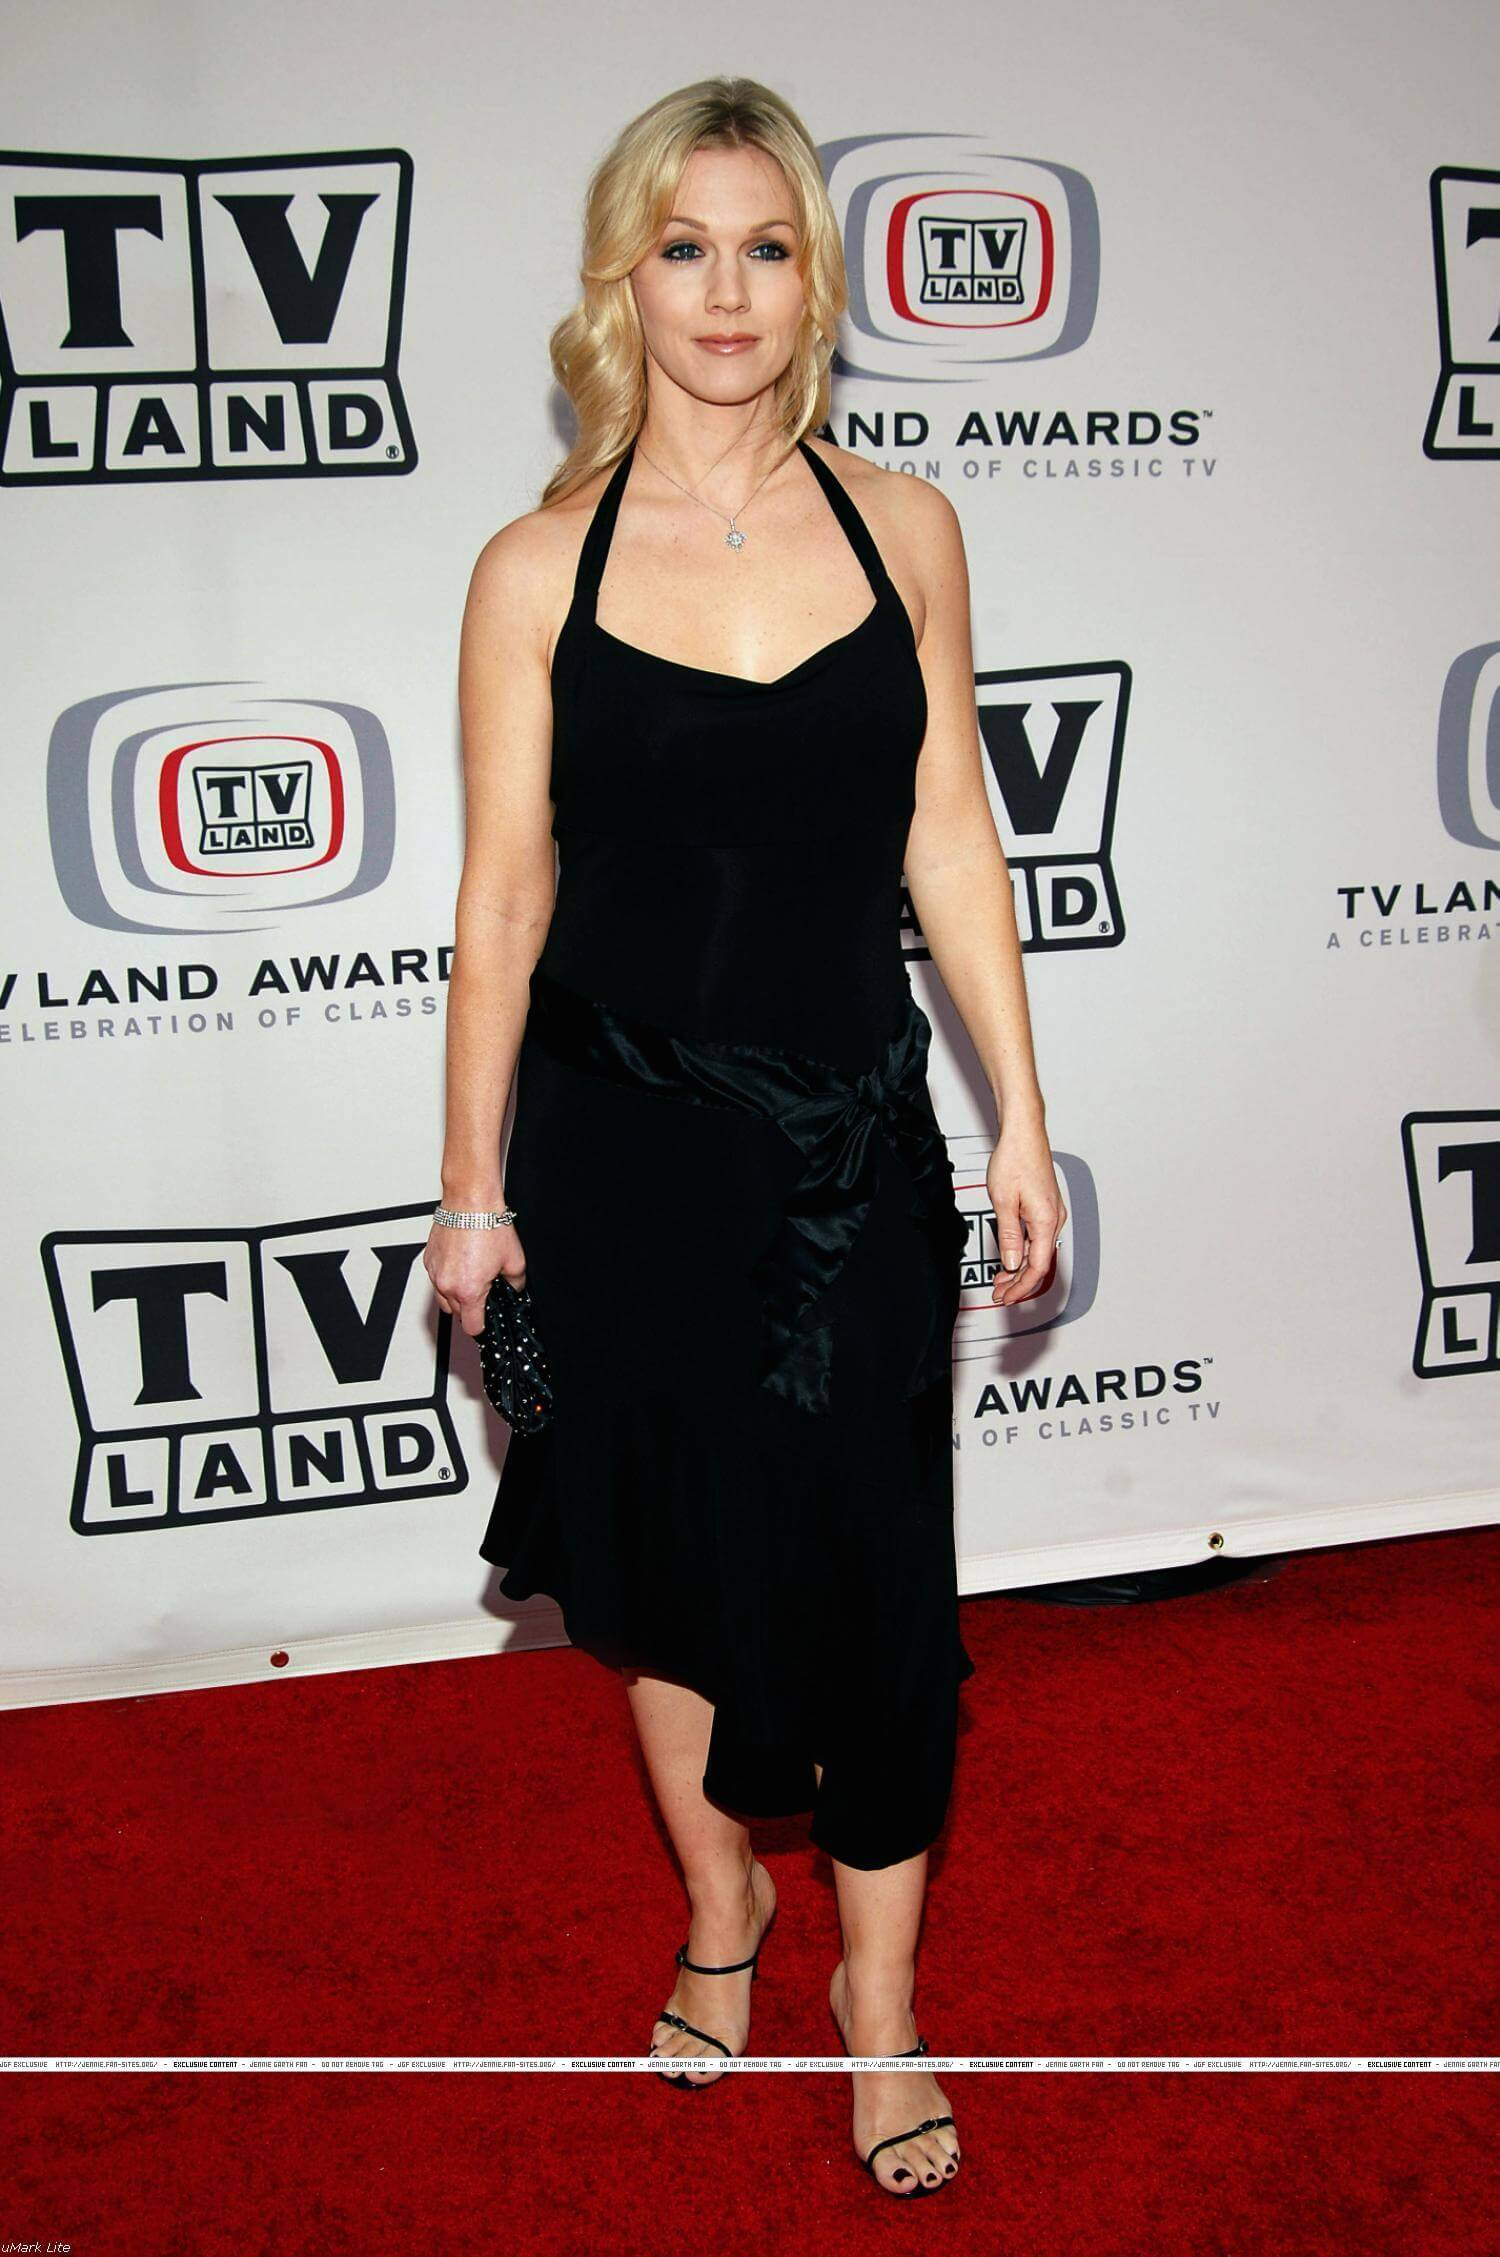 49 Hot Pictures Of Jennie Garth That Will Make Your Day A Win   Best Of Comic Books